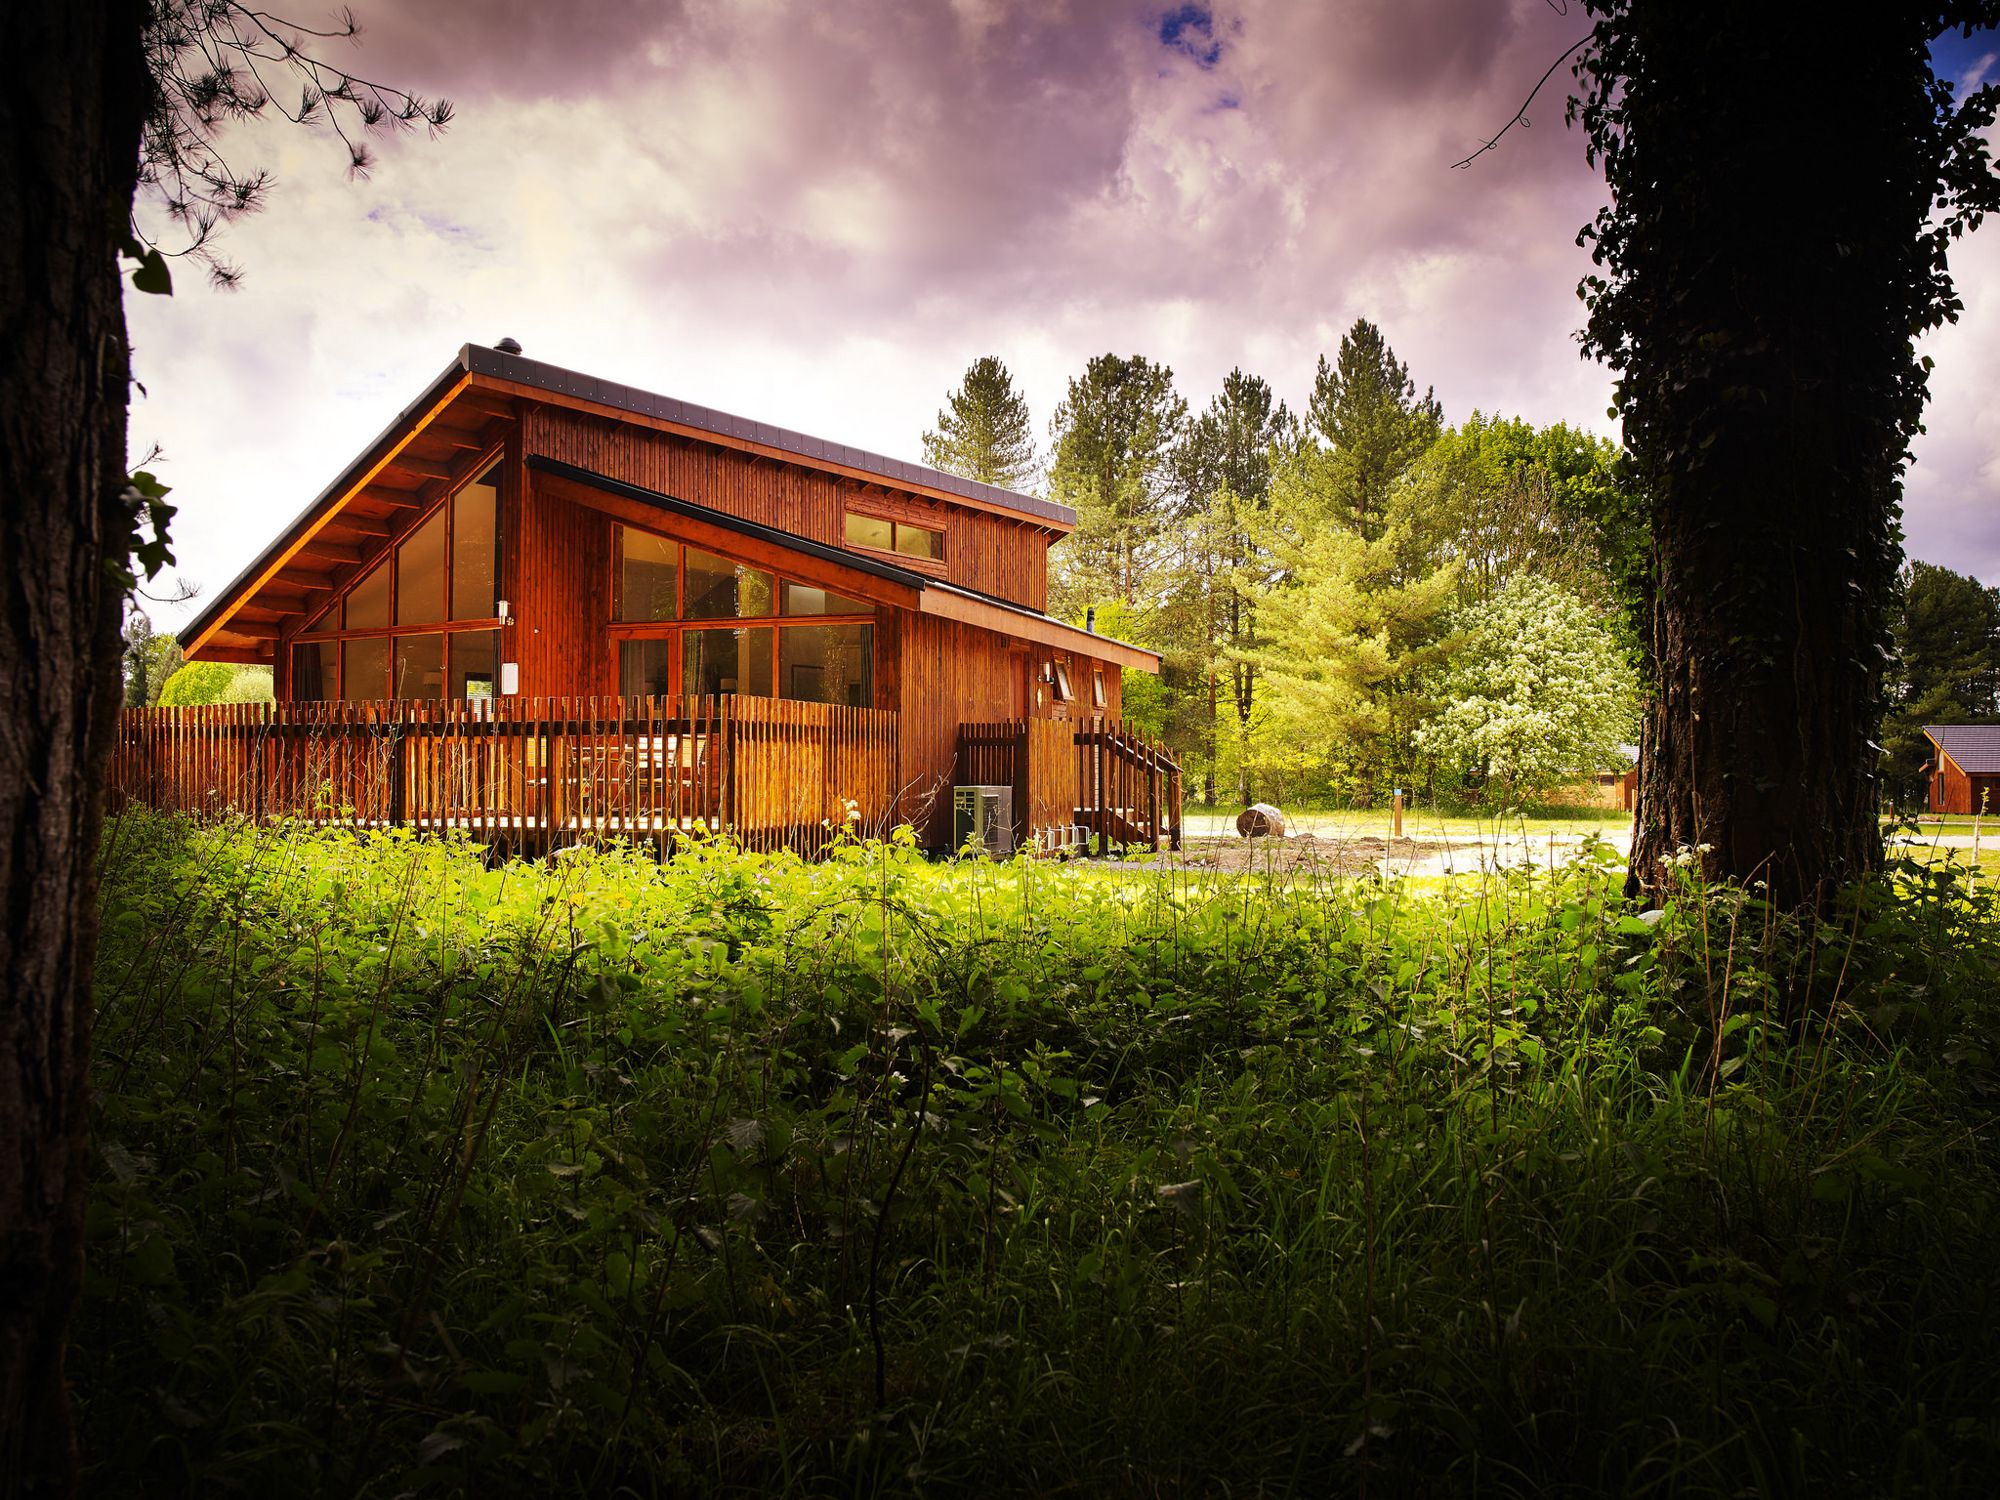 Self-Catering in Norfolk holidays at Cool Places